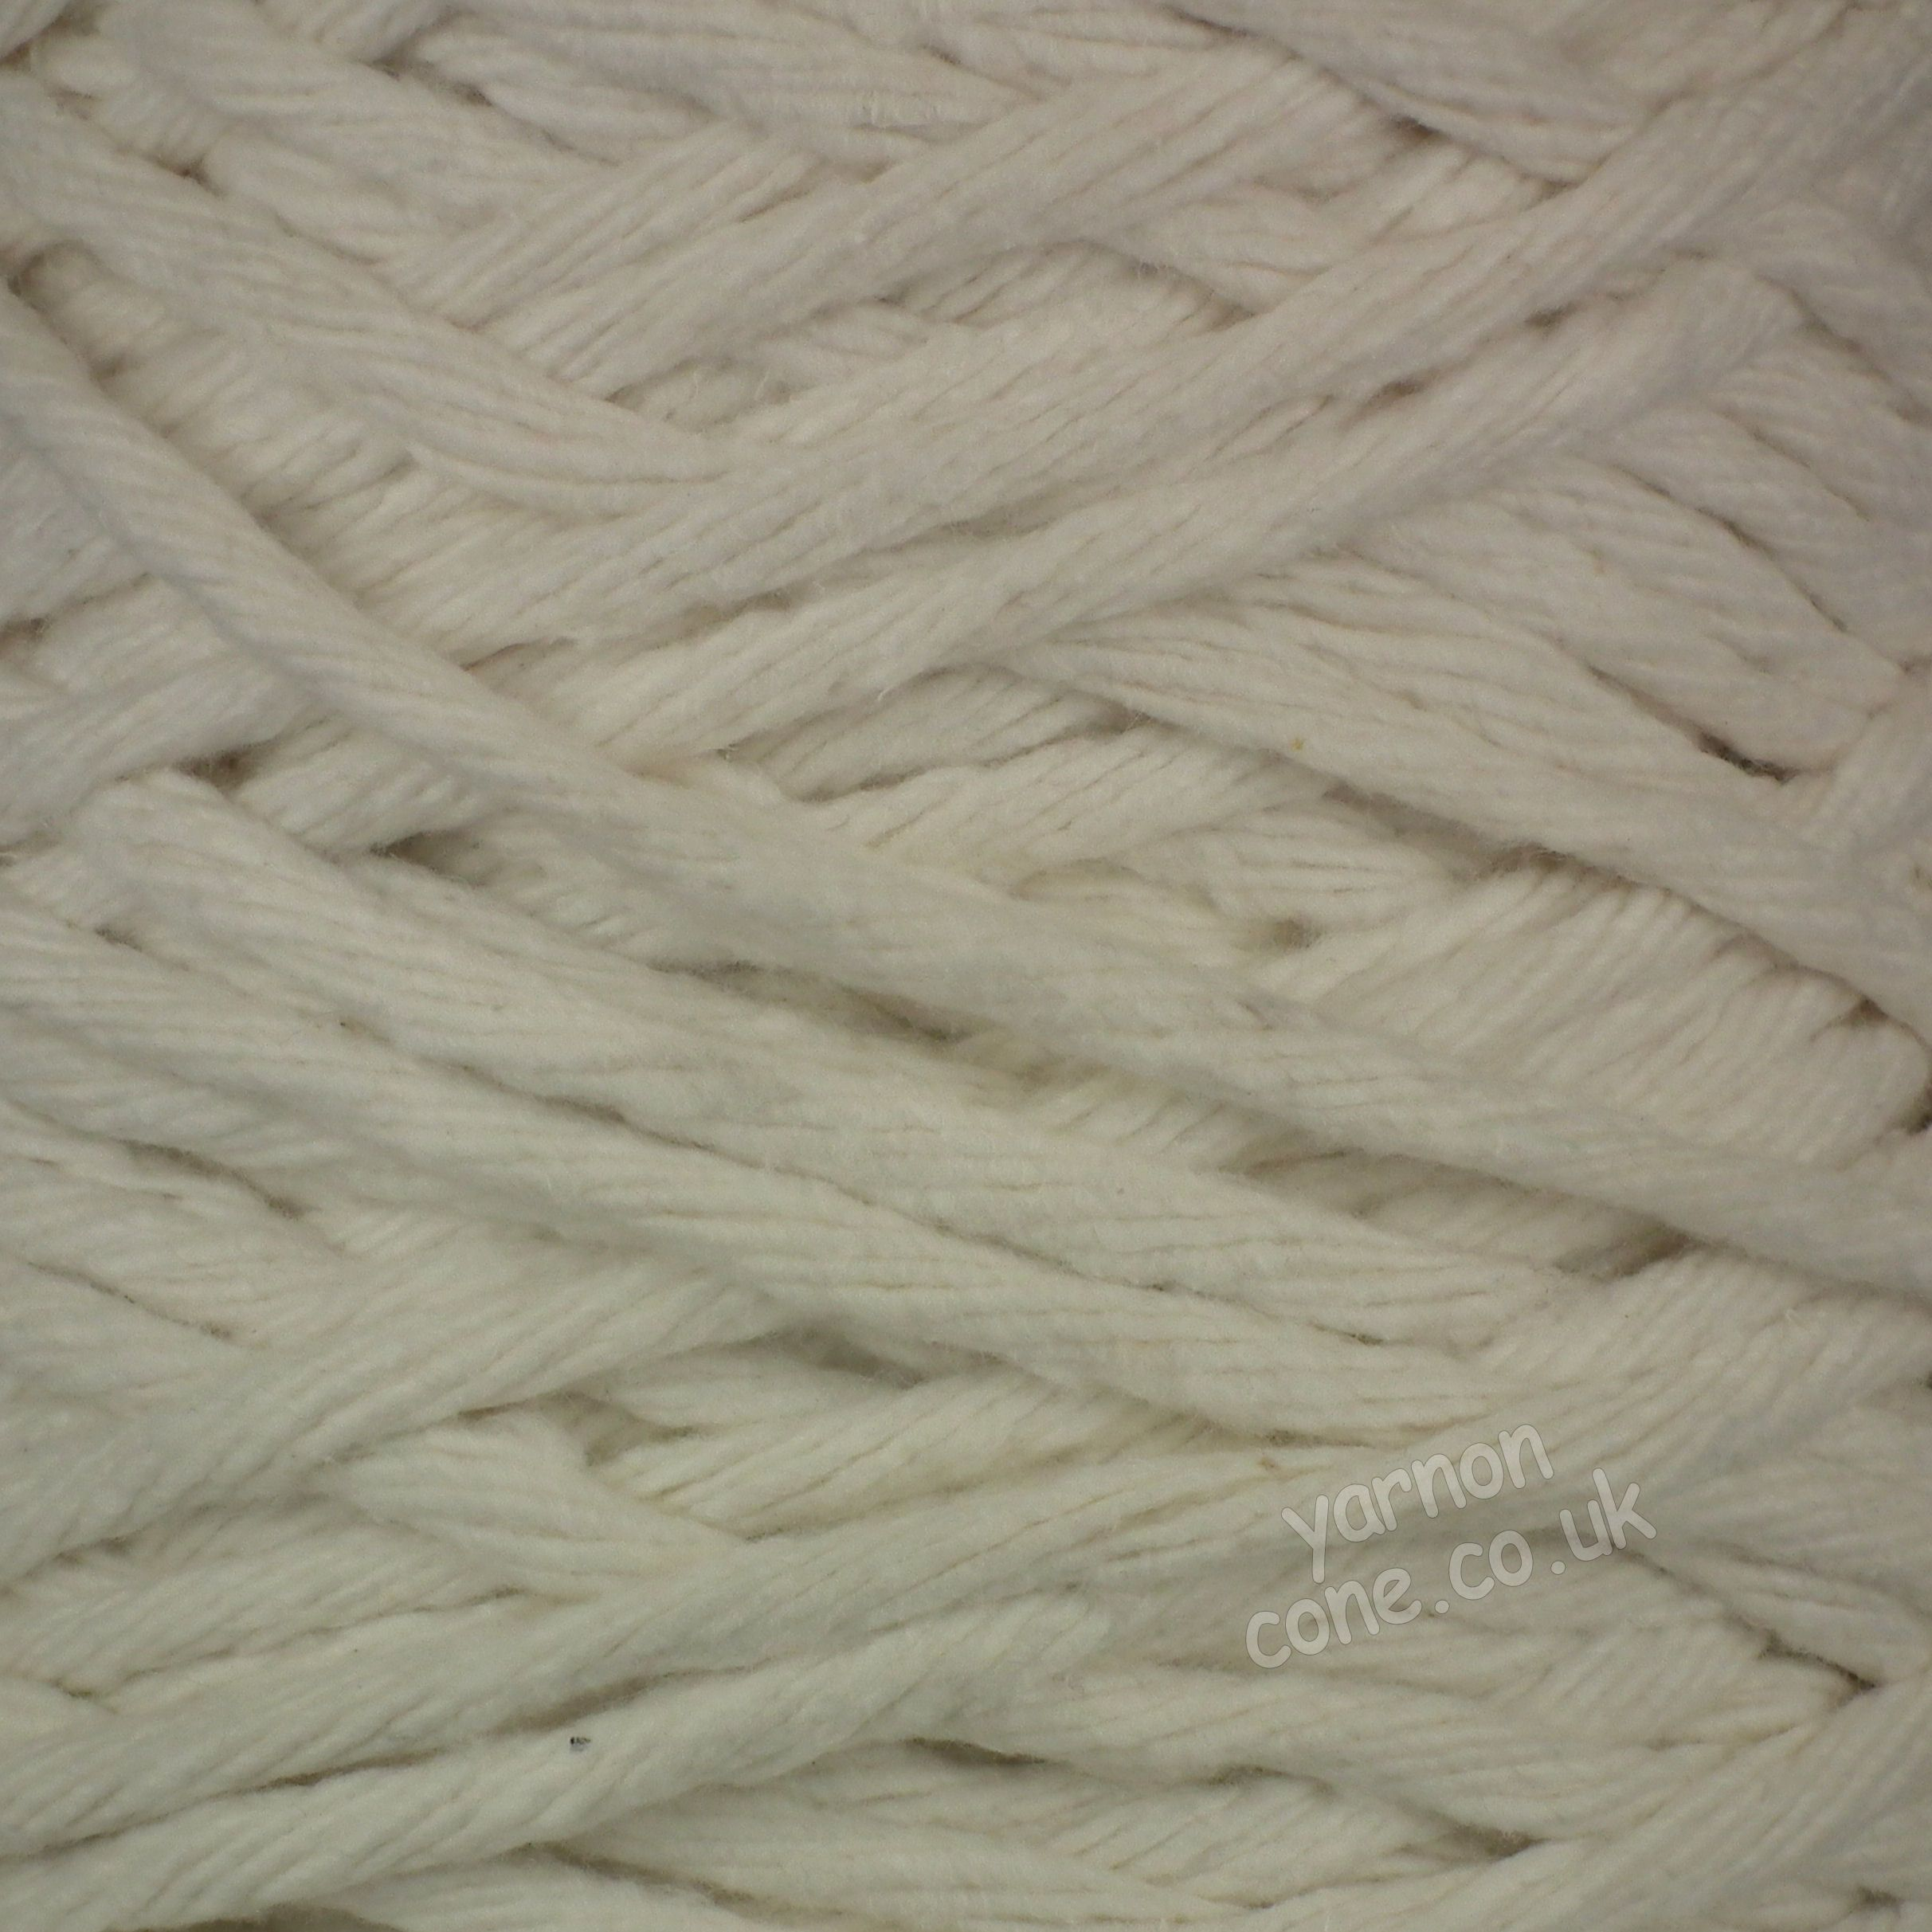 super chunky thick macrame cotton recycled yarn fibre ecru cream undyed cotton coned uk supplier